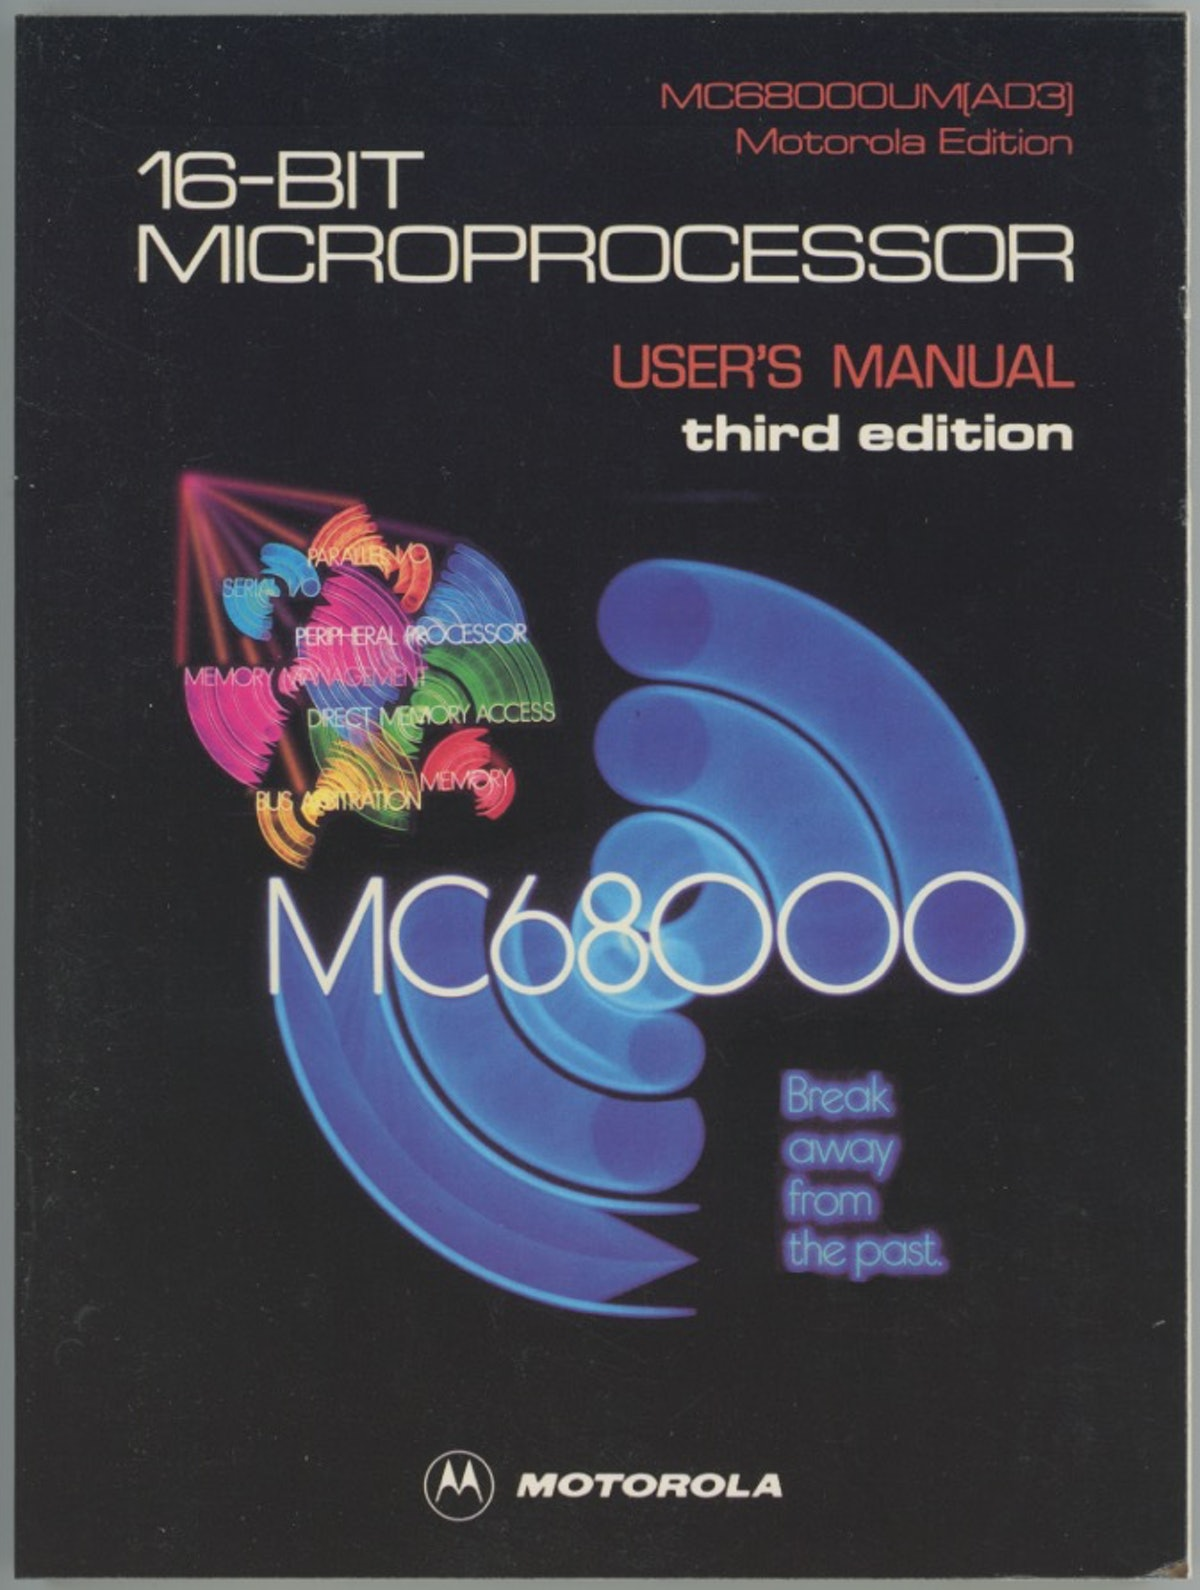 16-Bit Microprocessor User's Manual